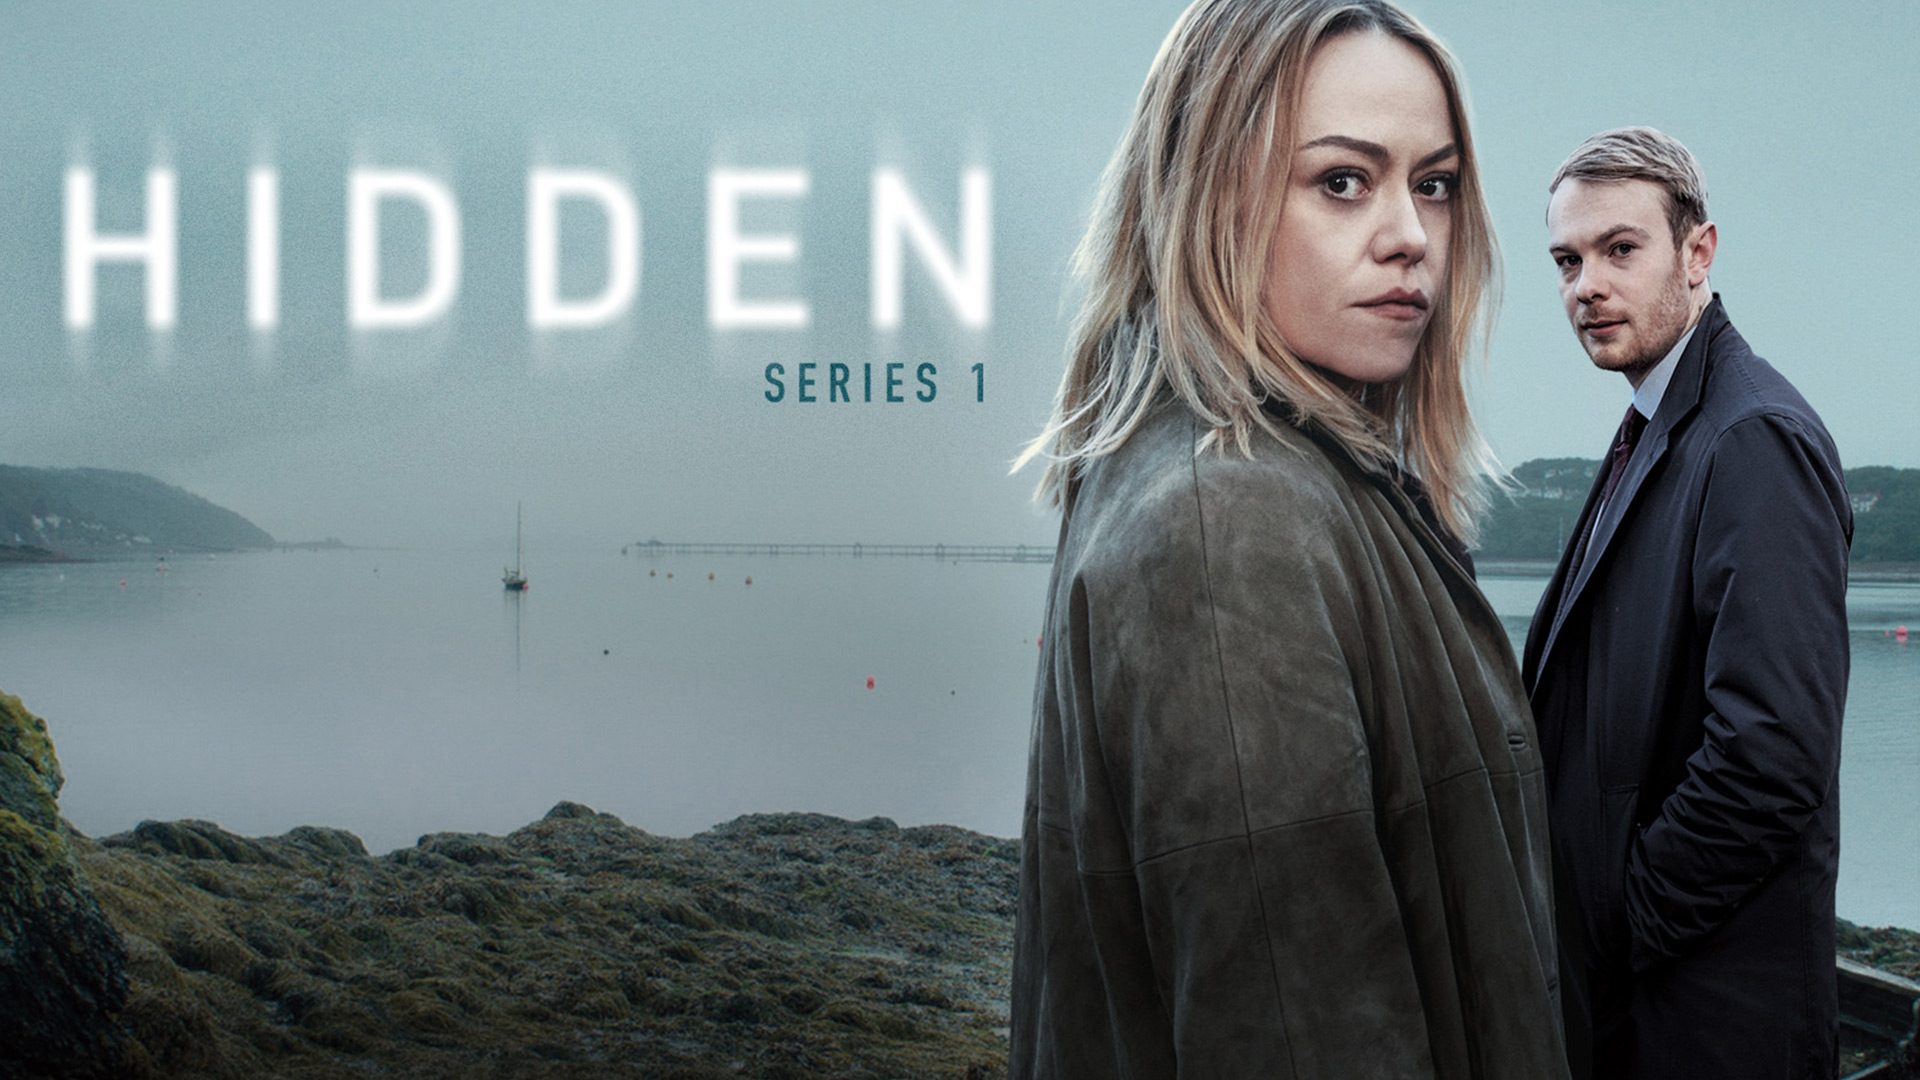 Hidden - Series 1